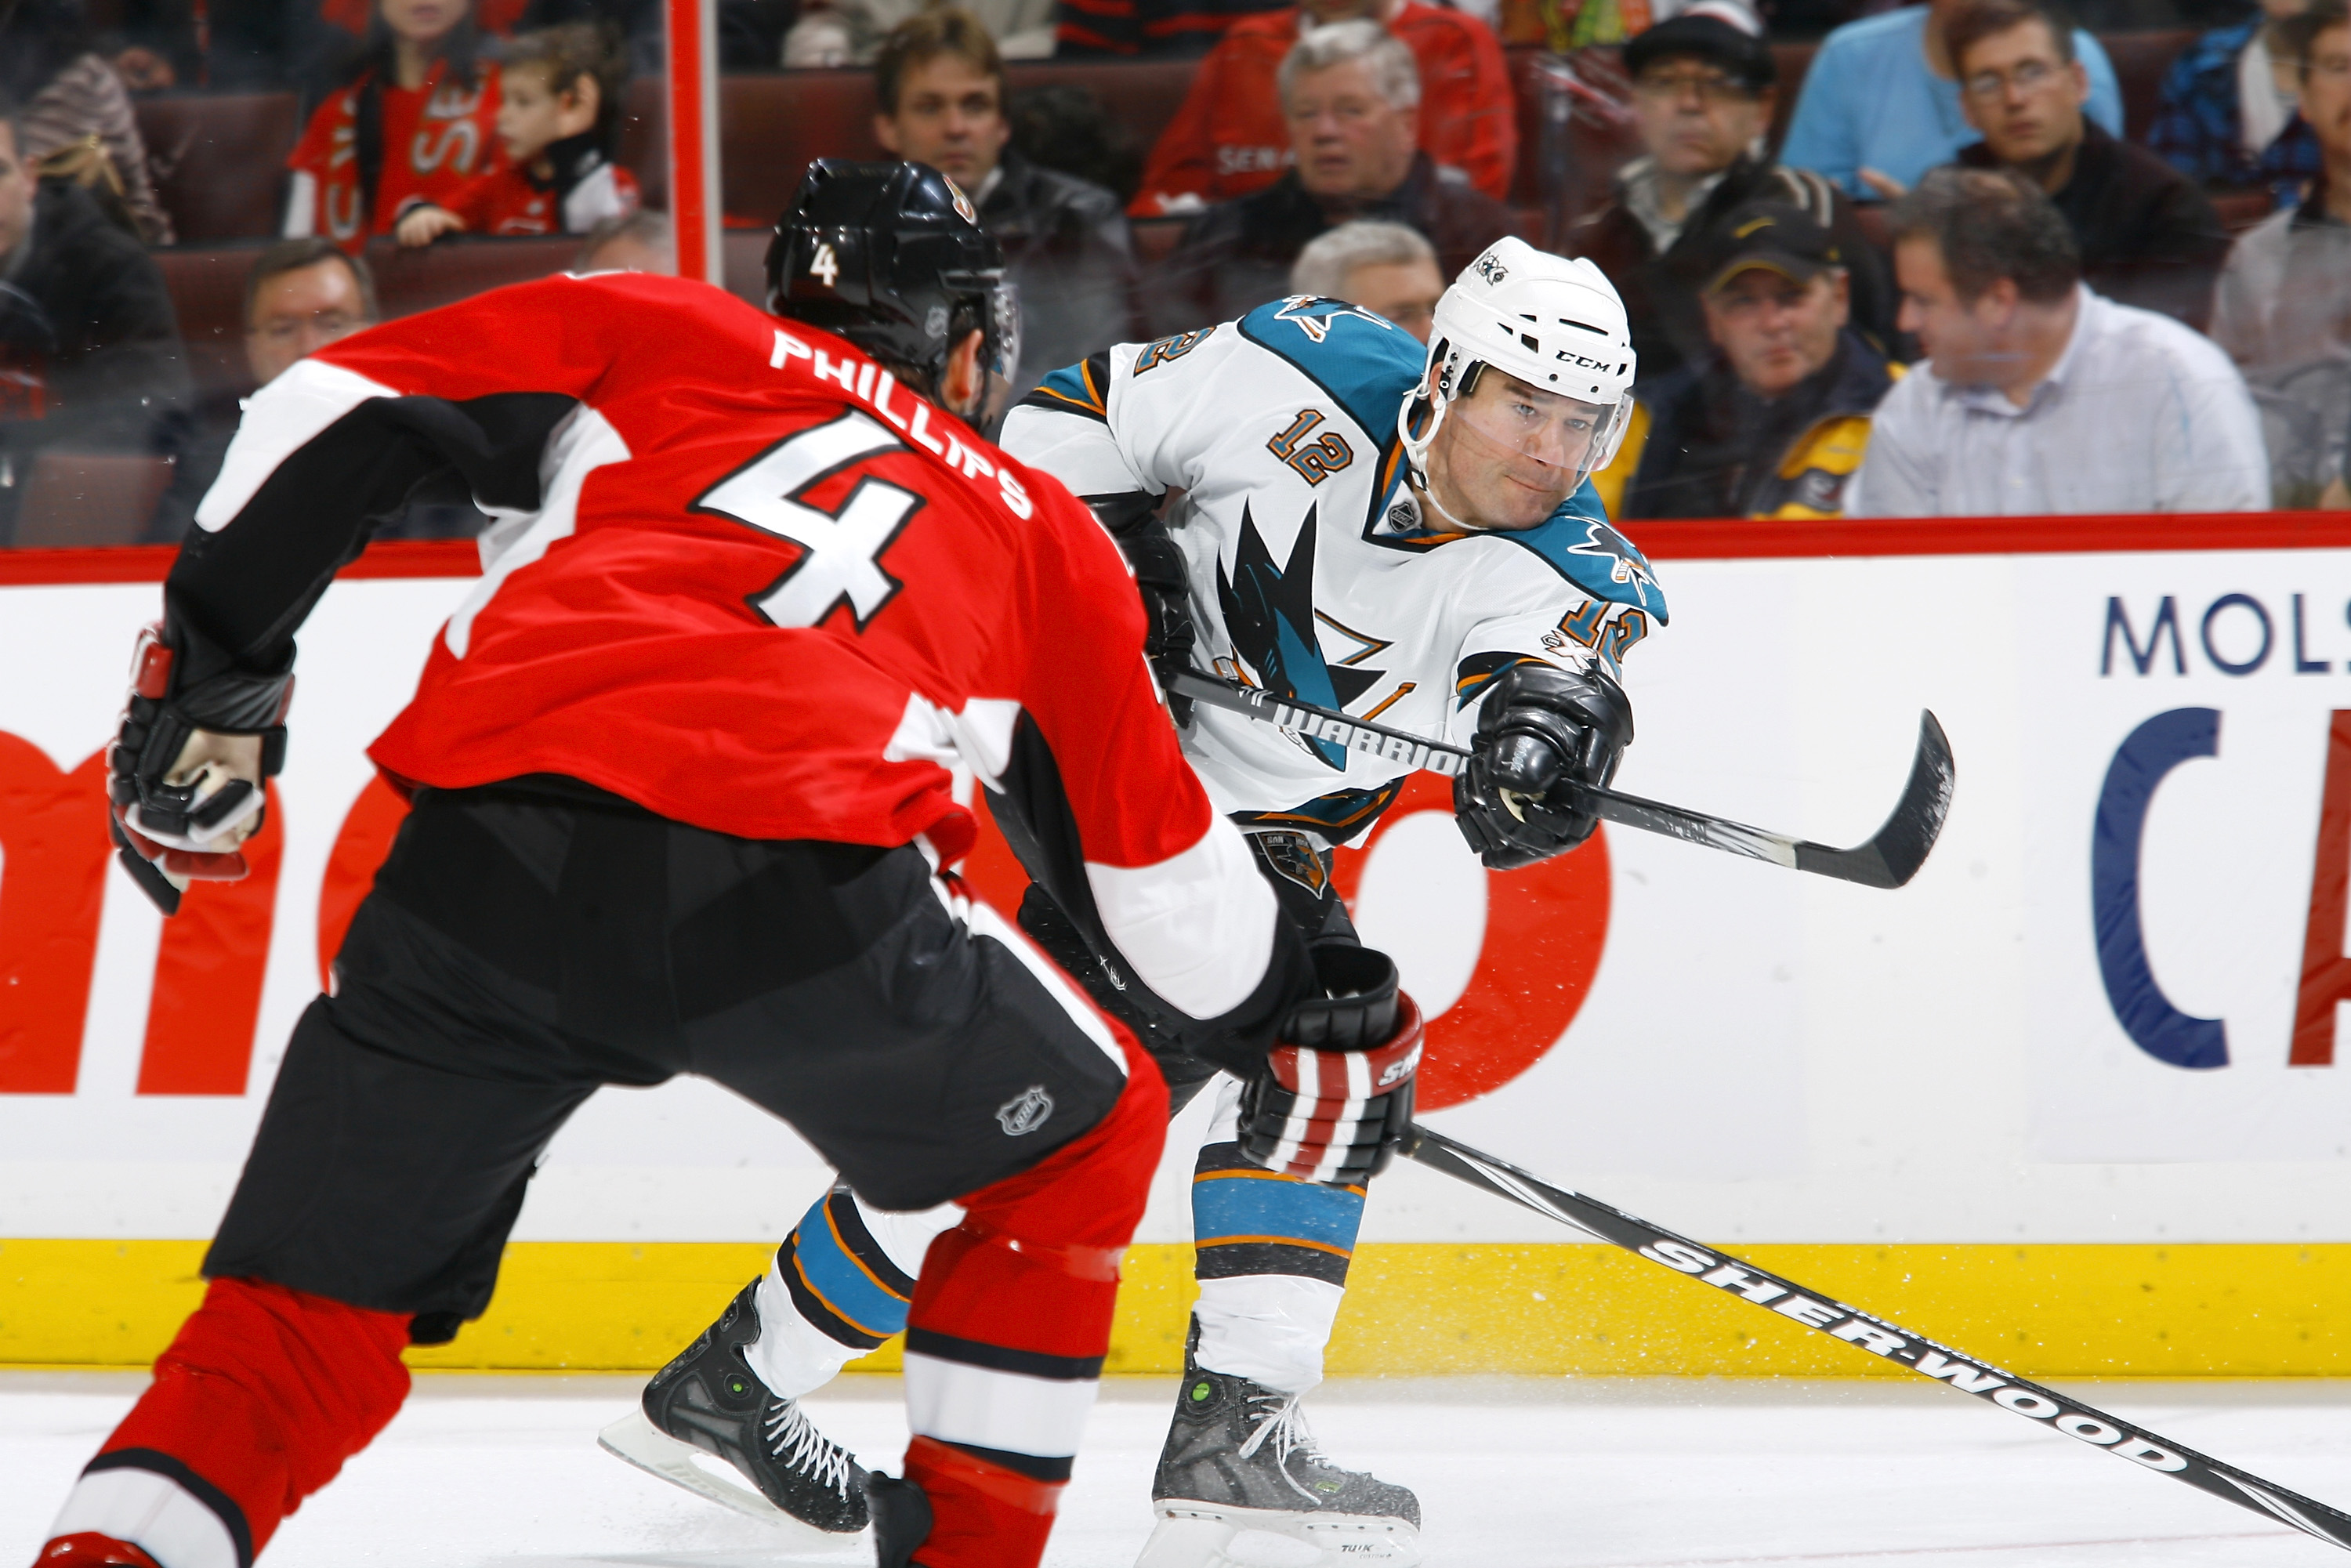 OTTAWA, ON - DECEMBER 02:  Patrick Marleau #12 of the San Jose Sharks fires a slapshot past defender Chris Phillips #4 of the Ottawa Senators in a game at Scotiabank Place on December 2, 2010 in Ottawa, Ontario, Canada.  (Photo by Phillip MacCallum/Getty